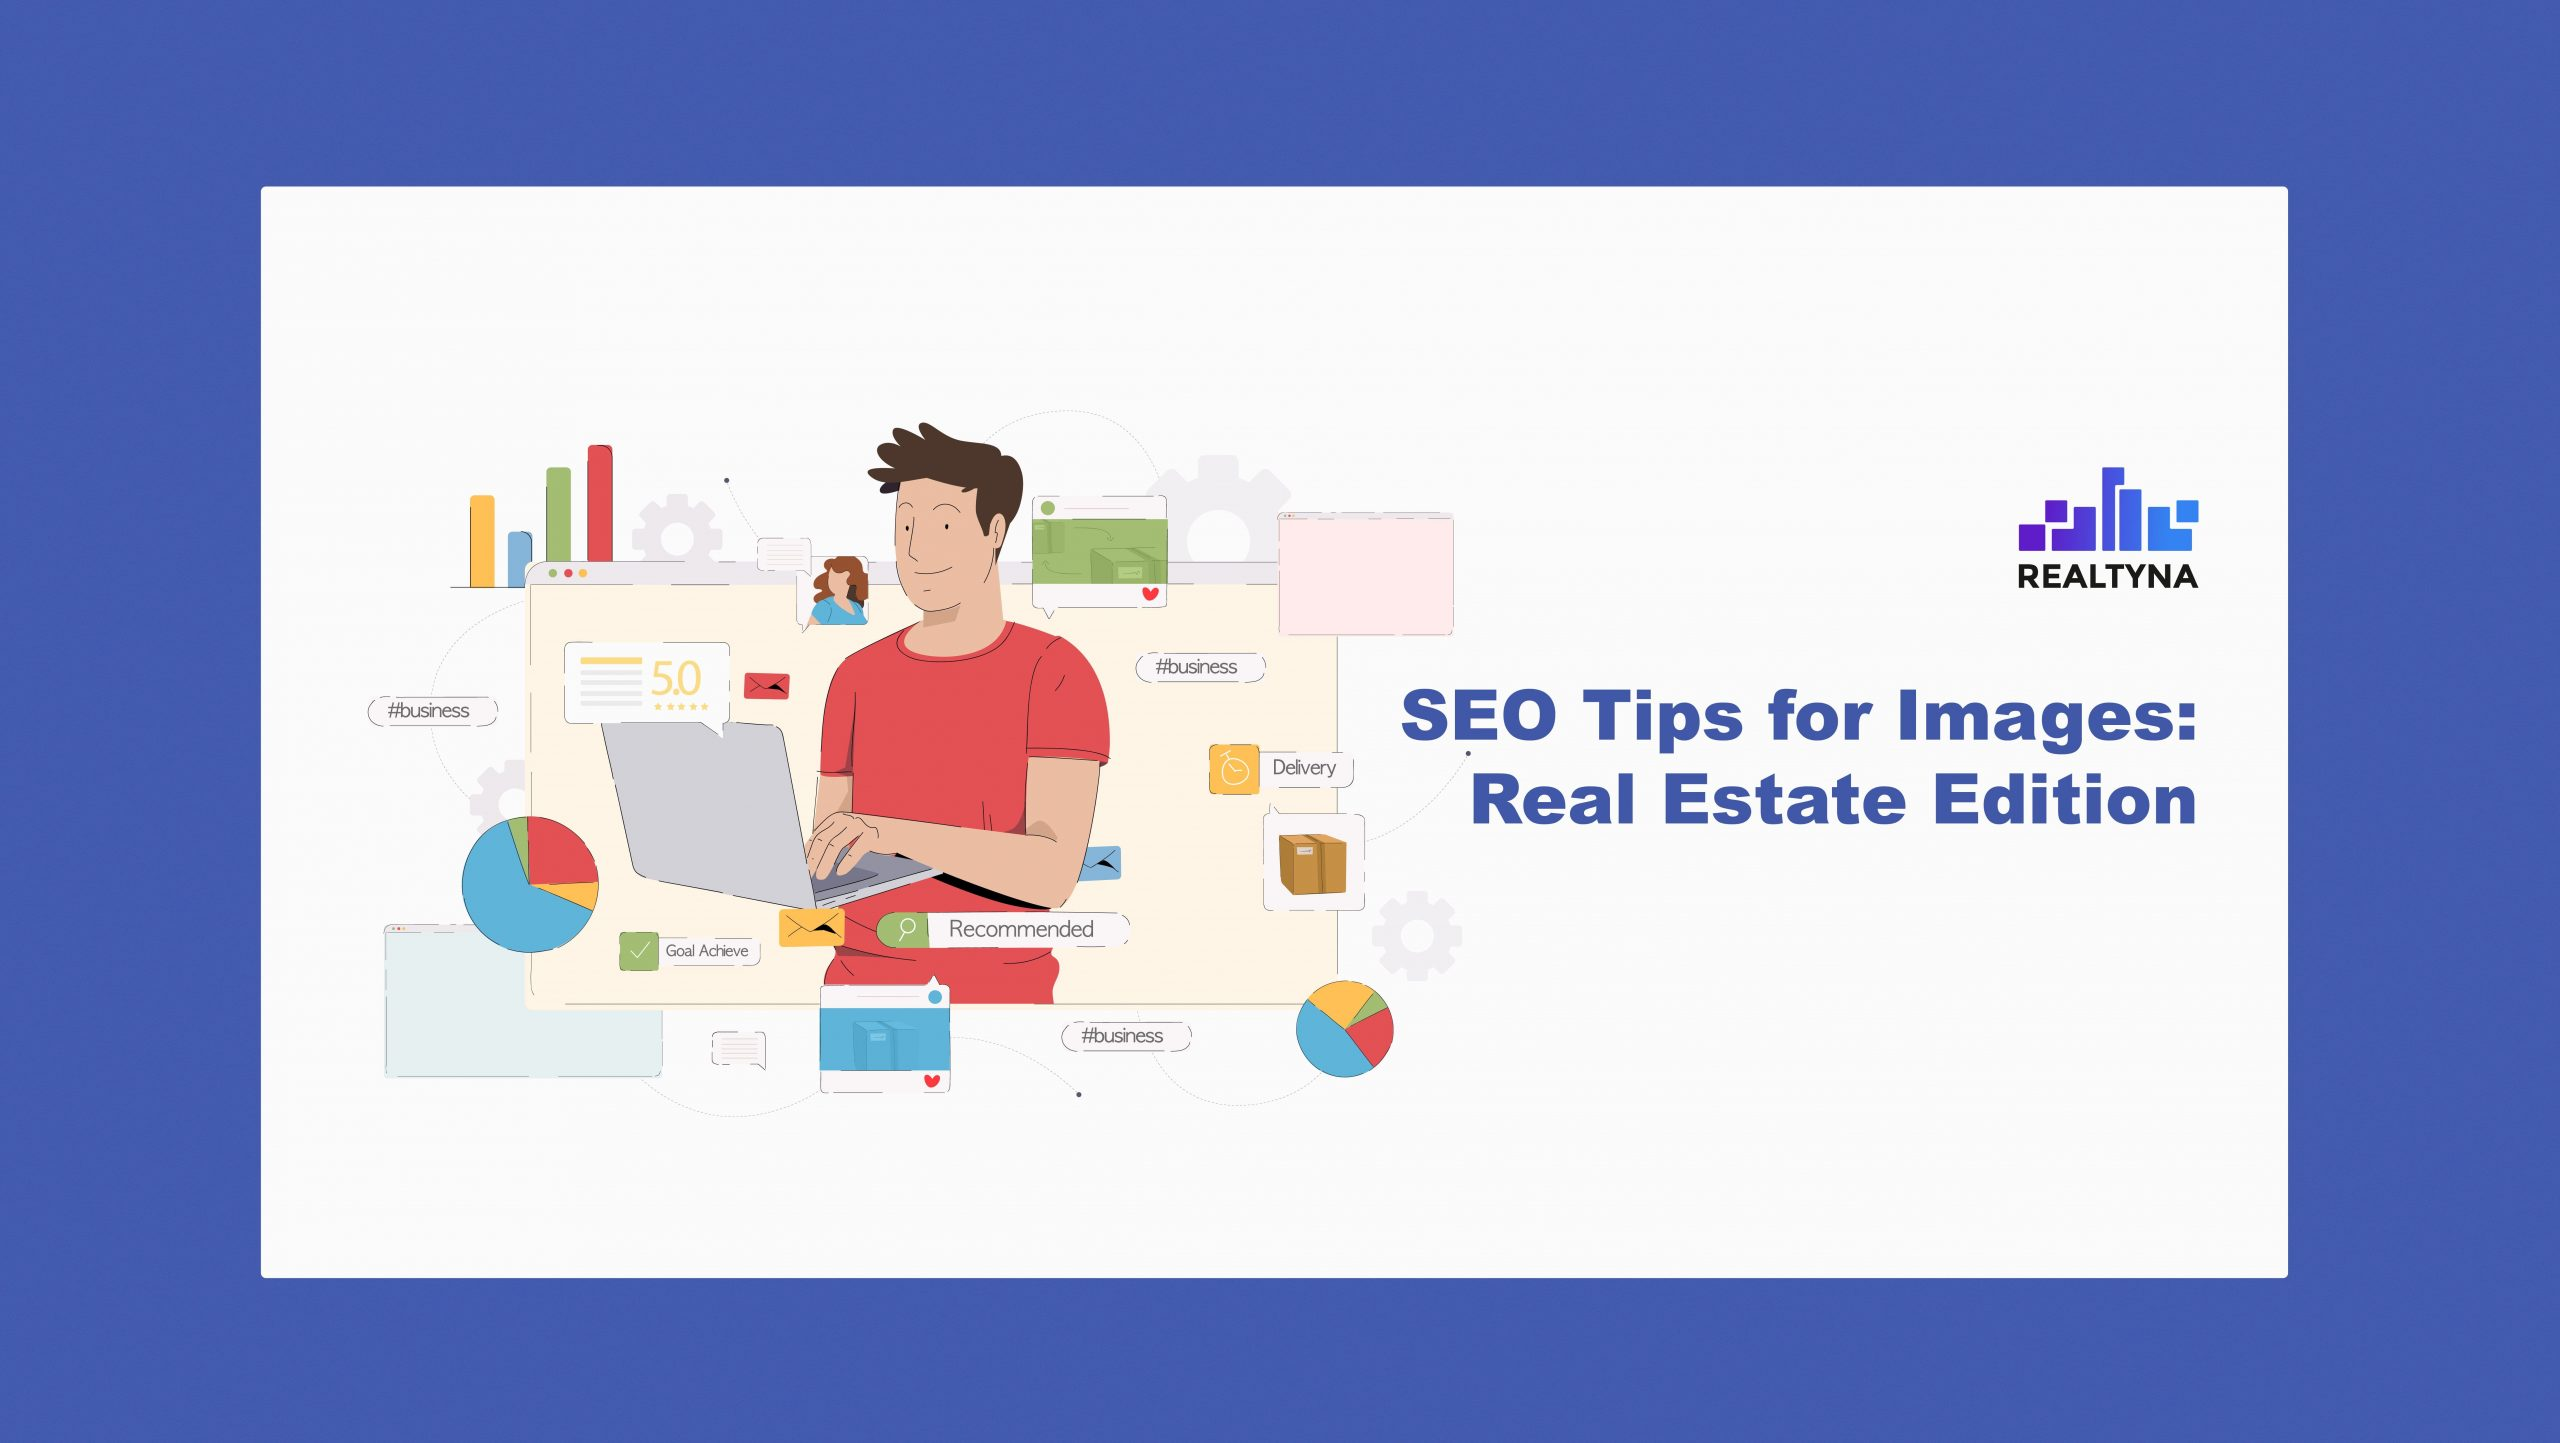 SEO Tips for Images: Real Estate Edition